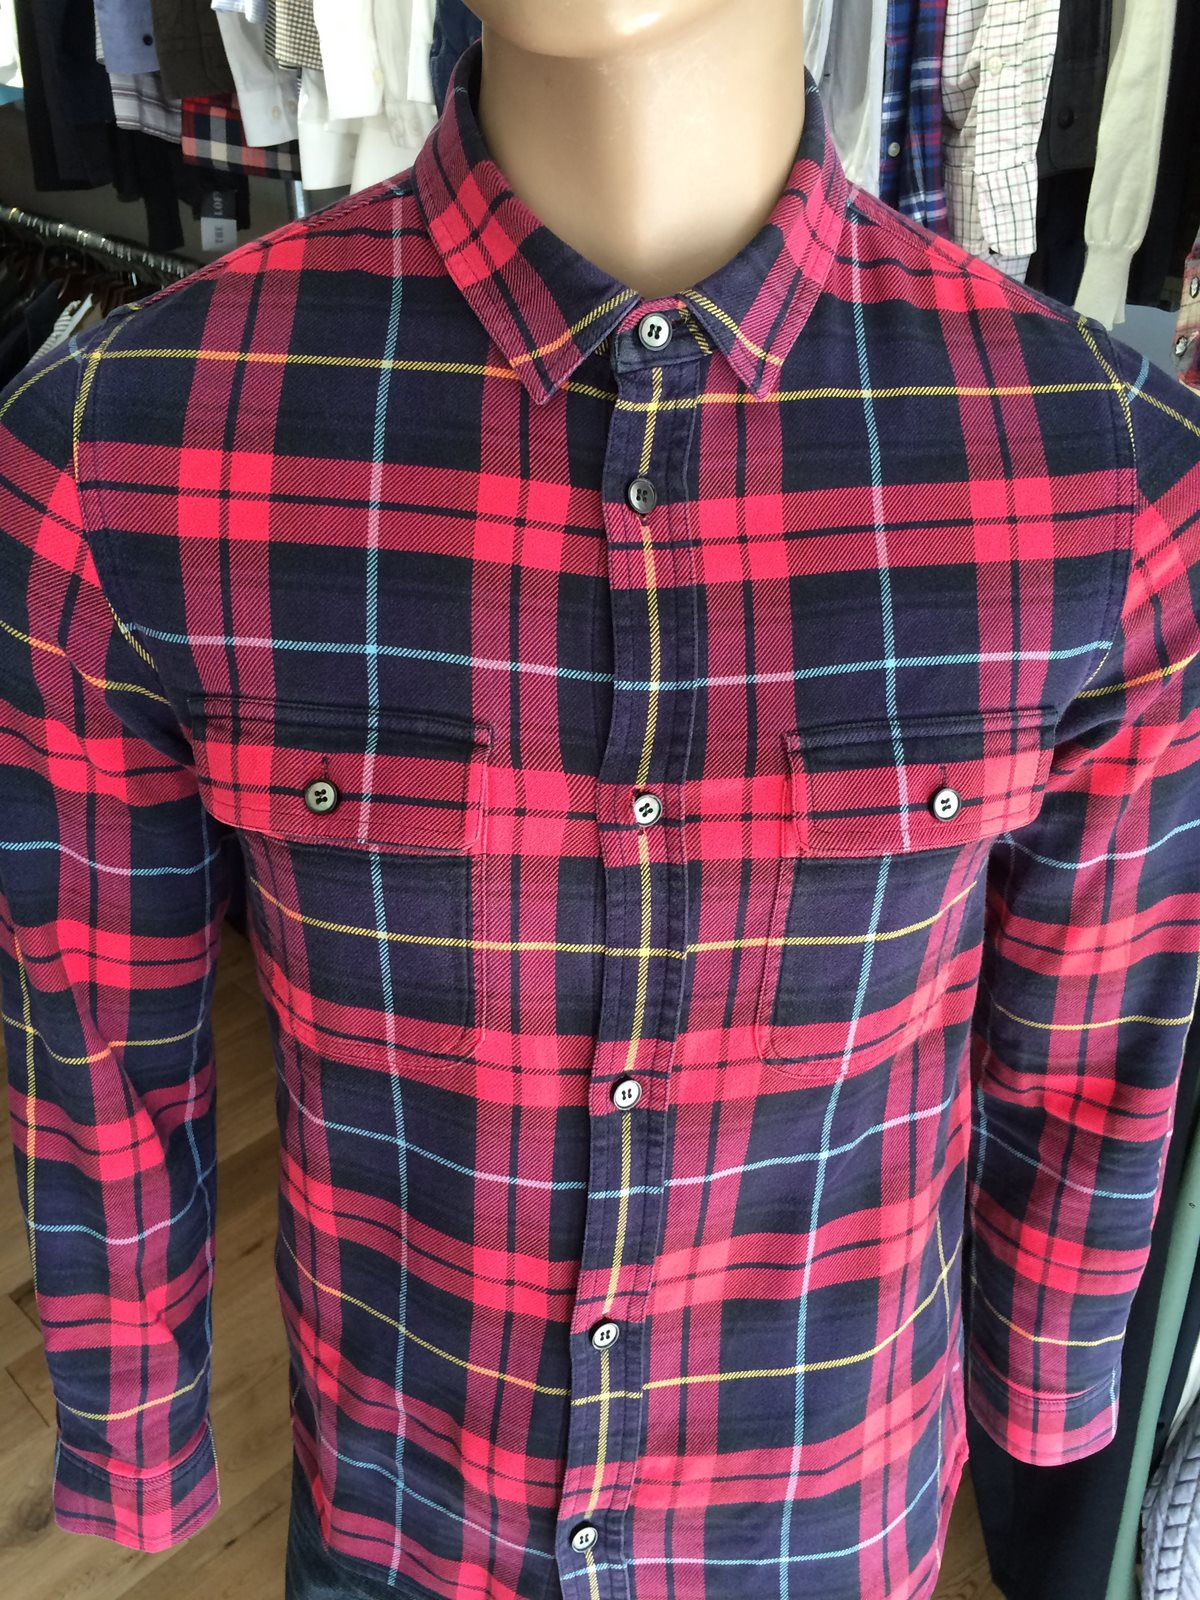 APC  Checked Shirt - The Loft, London